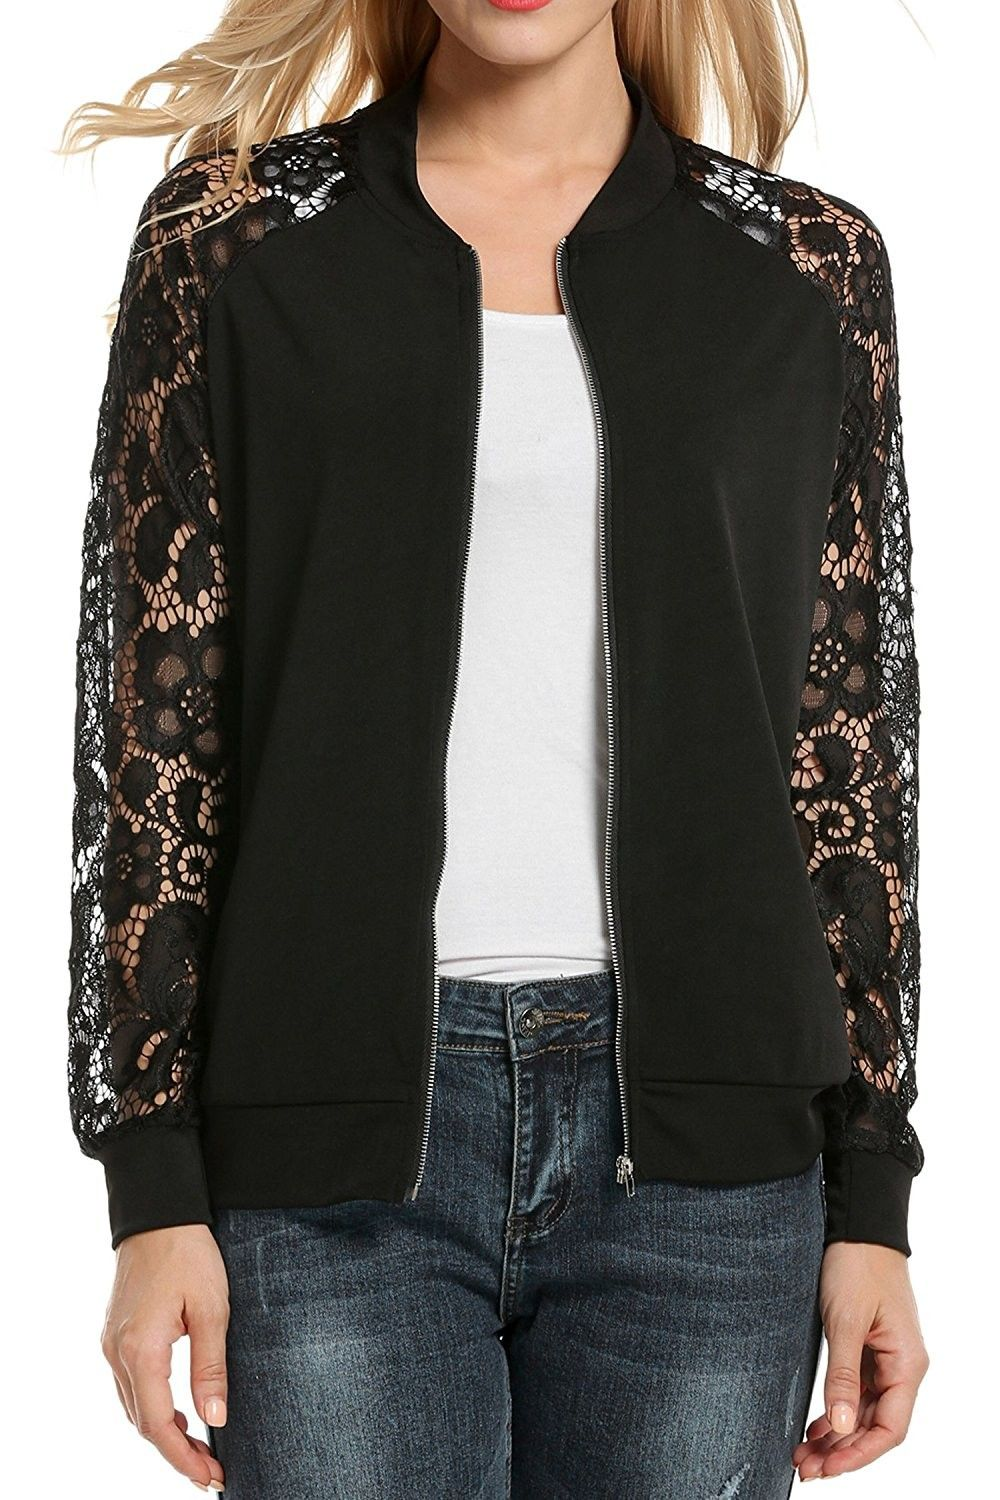 Women Casual Lace Patchwork Zip Up Short Slim Fit Bomber Jacket Black Cv12nqyi46w Slim Fit Bomber Jacket Womens Jackets Casual Casual Lace [ 1500 x 1000 Pixel ]